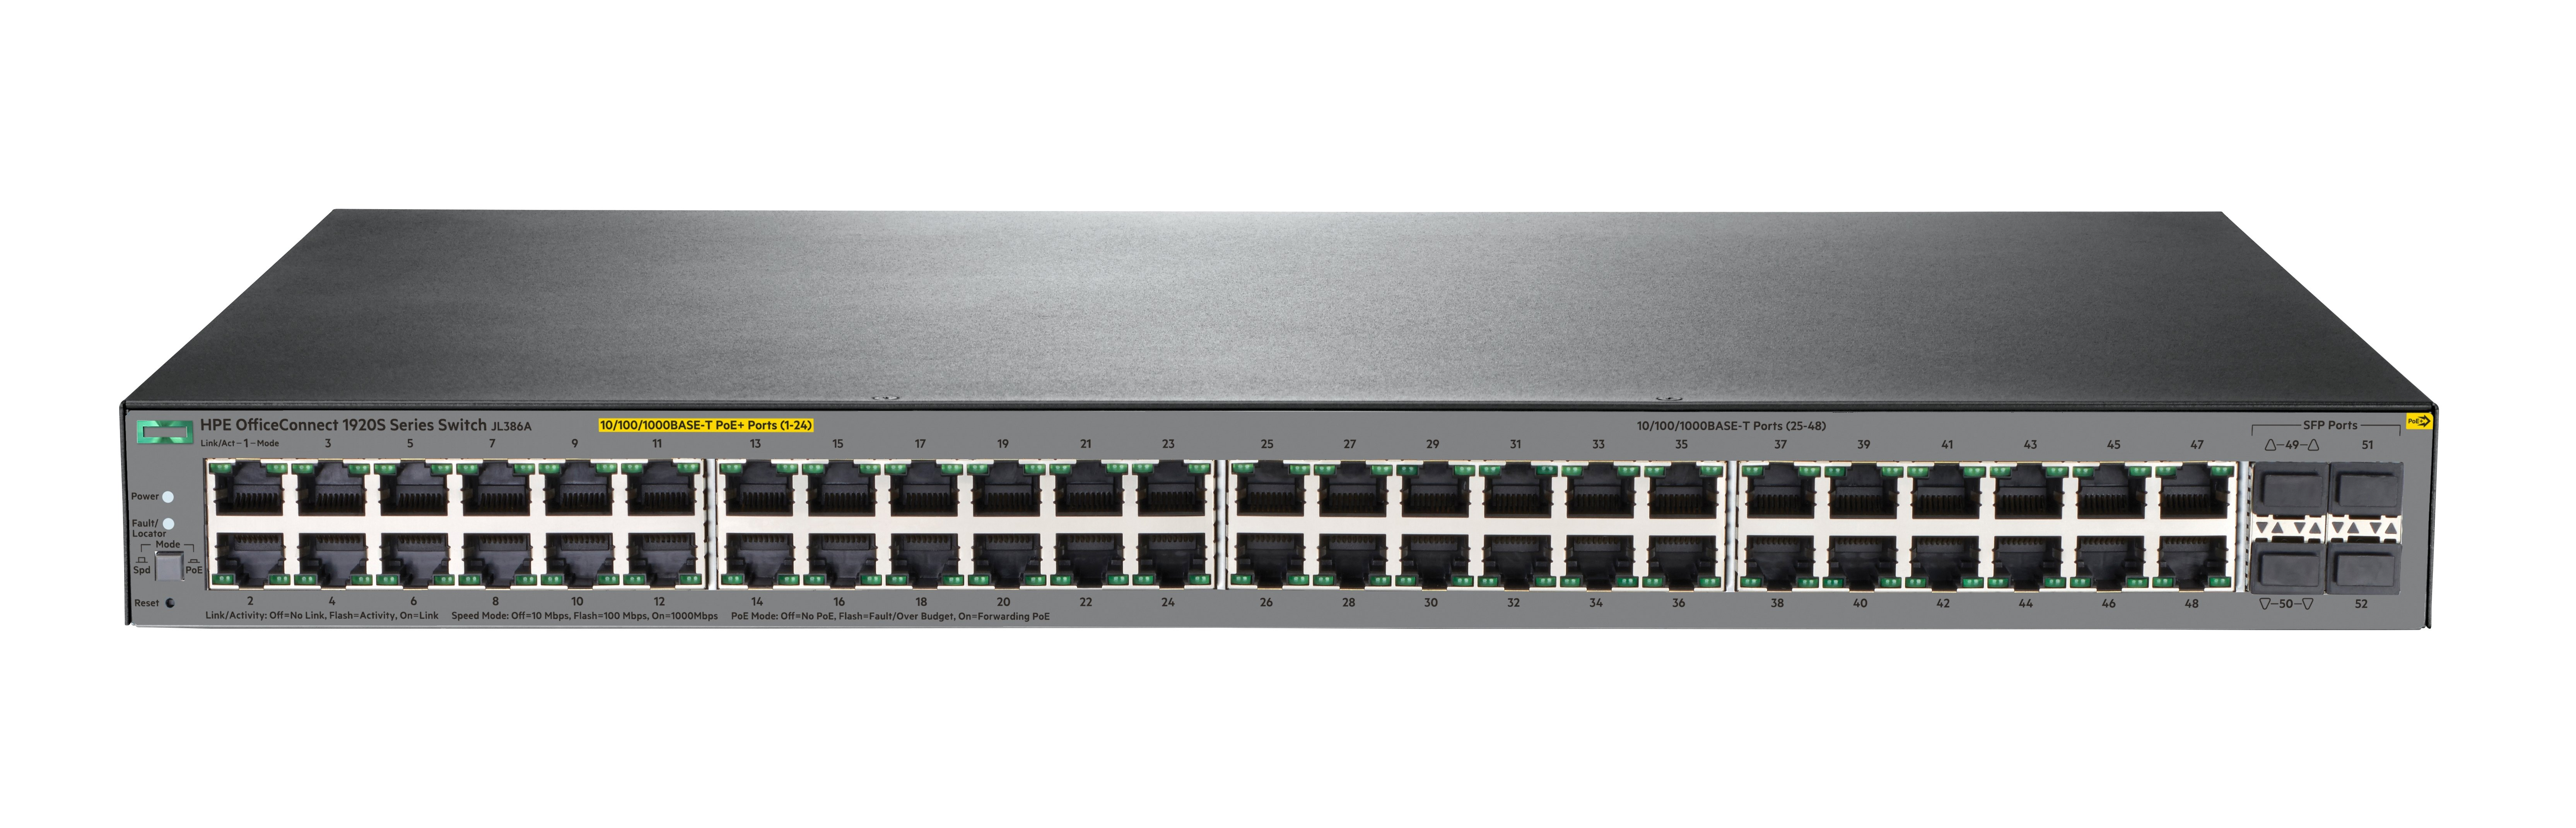 Hpe Officeconnect 1920s 48g 4sfp Ppoe 370w Switch 48